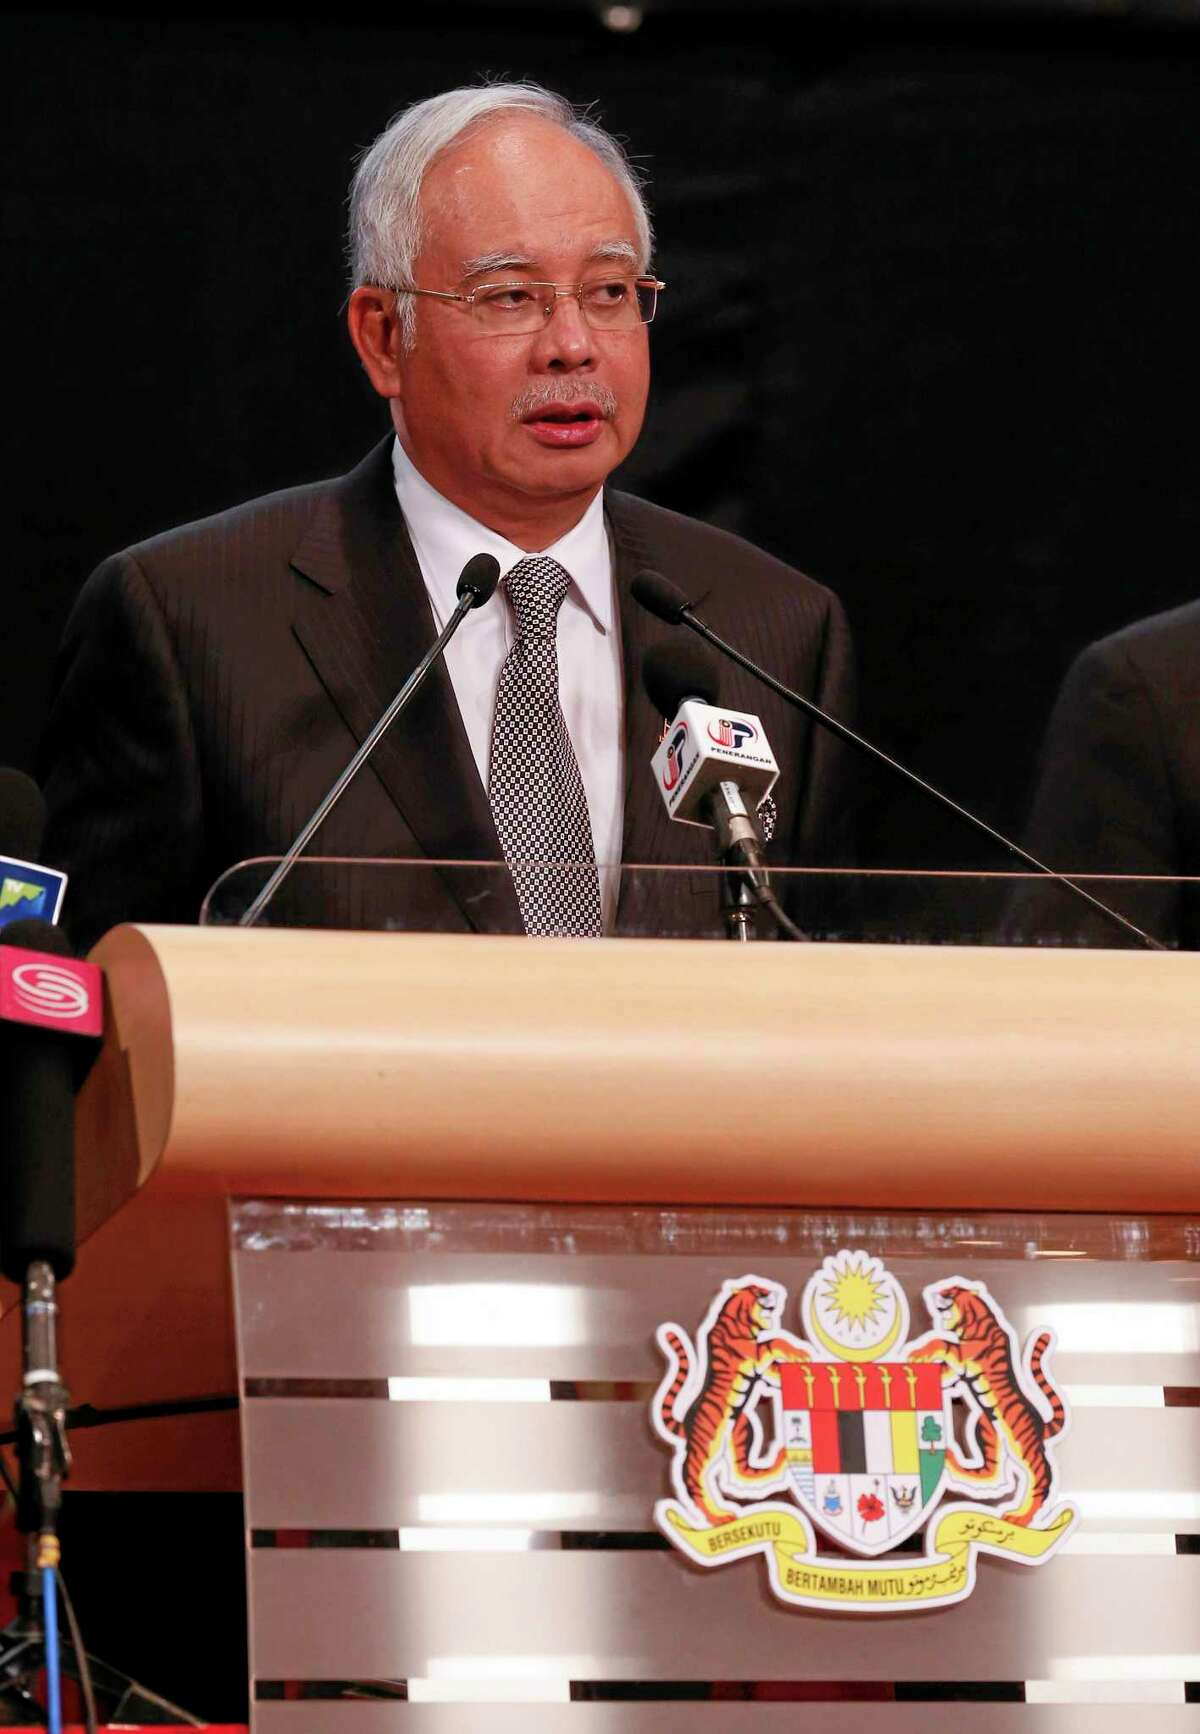 Malaysia's Prime Minister Najib Razak speaks during the press conference for the missing Malaysia Airline, MH370 at Putra World Trade Centre (PWTC) in Kuala Lumpur, Malaysia, Monday, March 24, 2014. Razak says new data show missing plane plunged into southern Indian Ocean. (AP Photo/Vincent Thian)